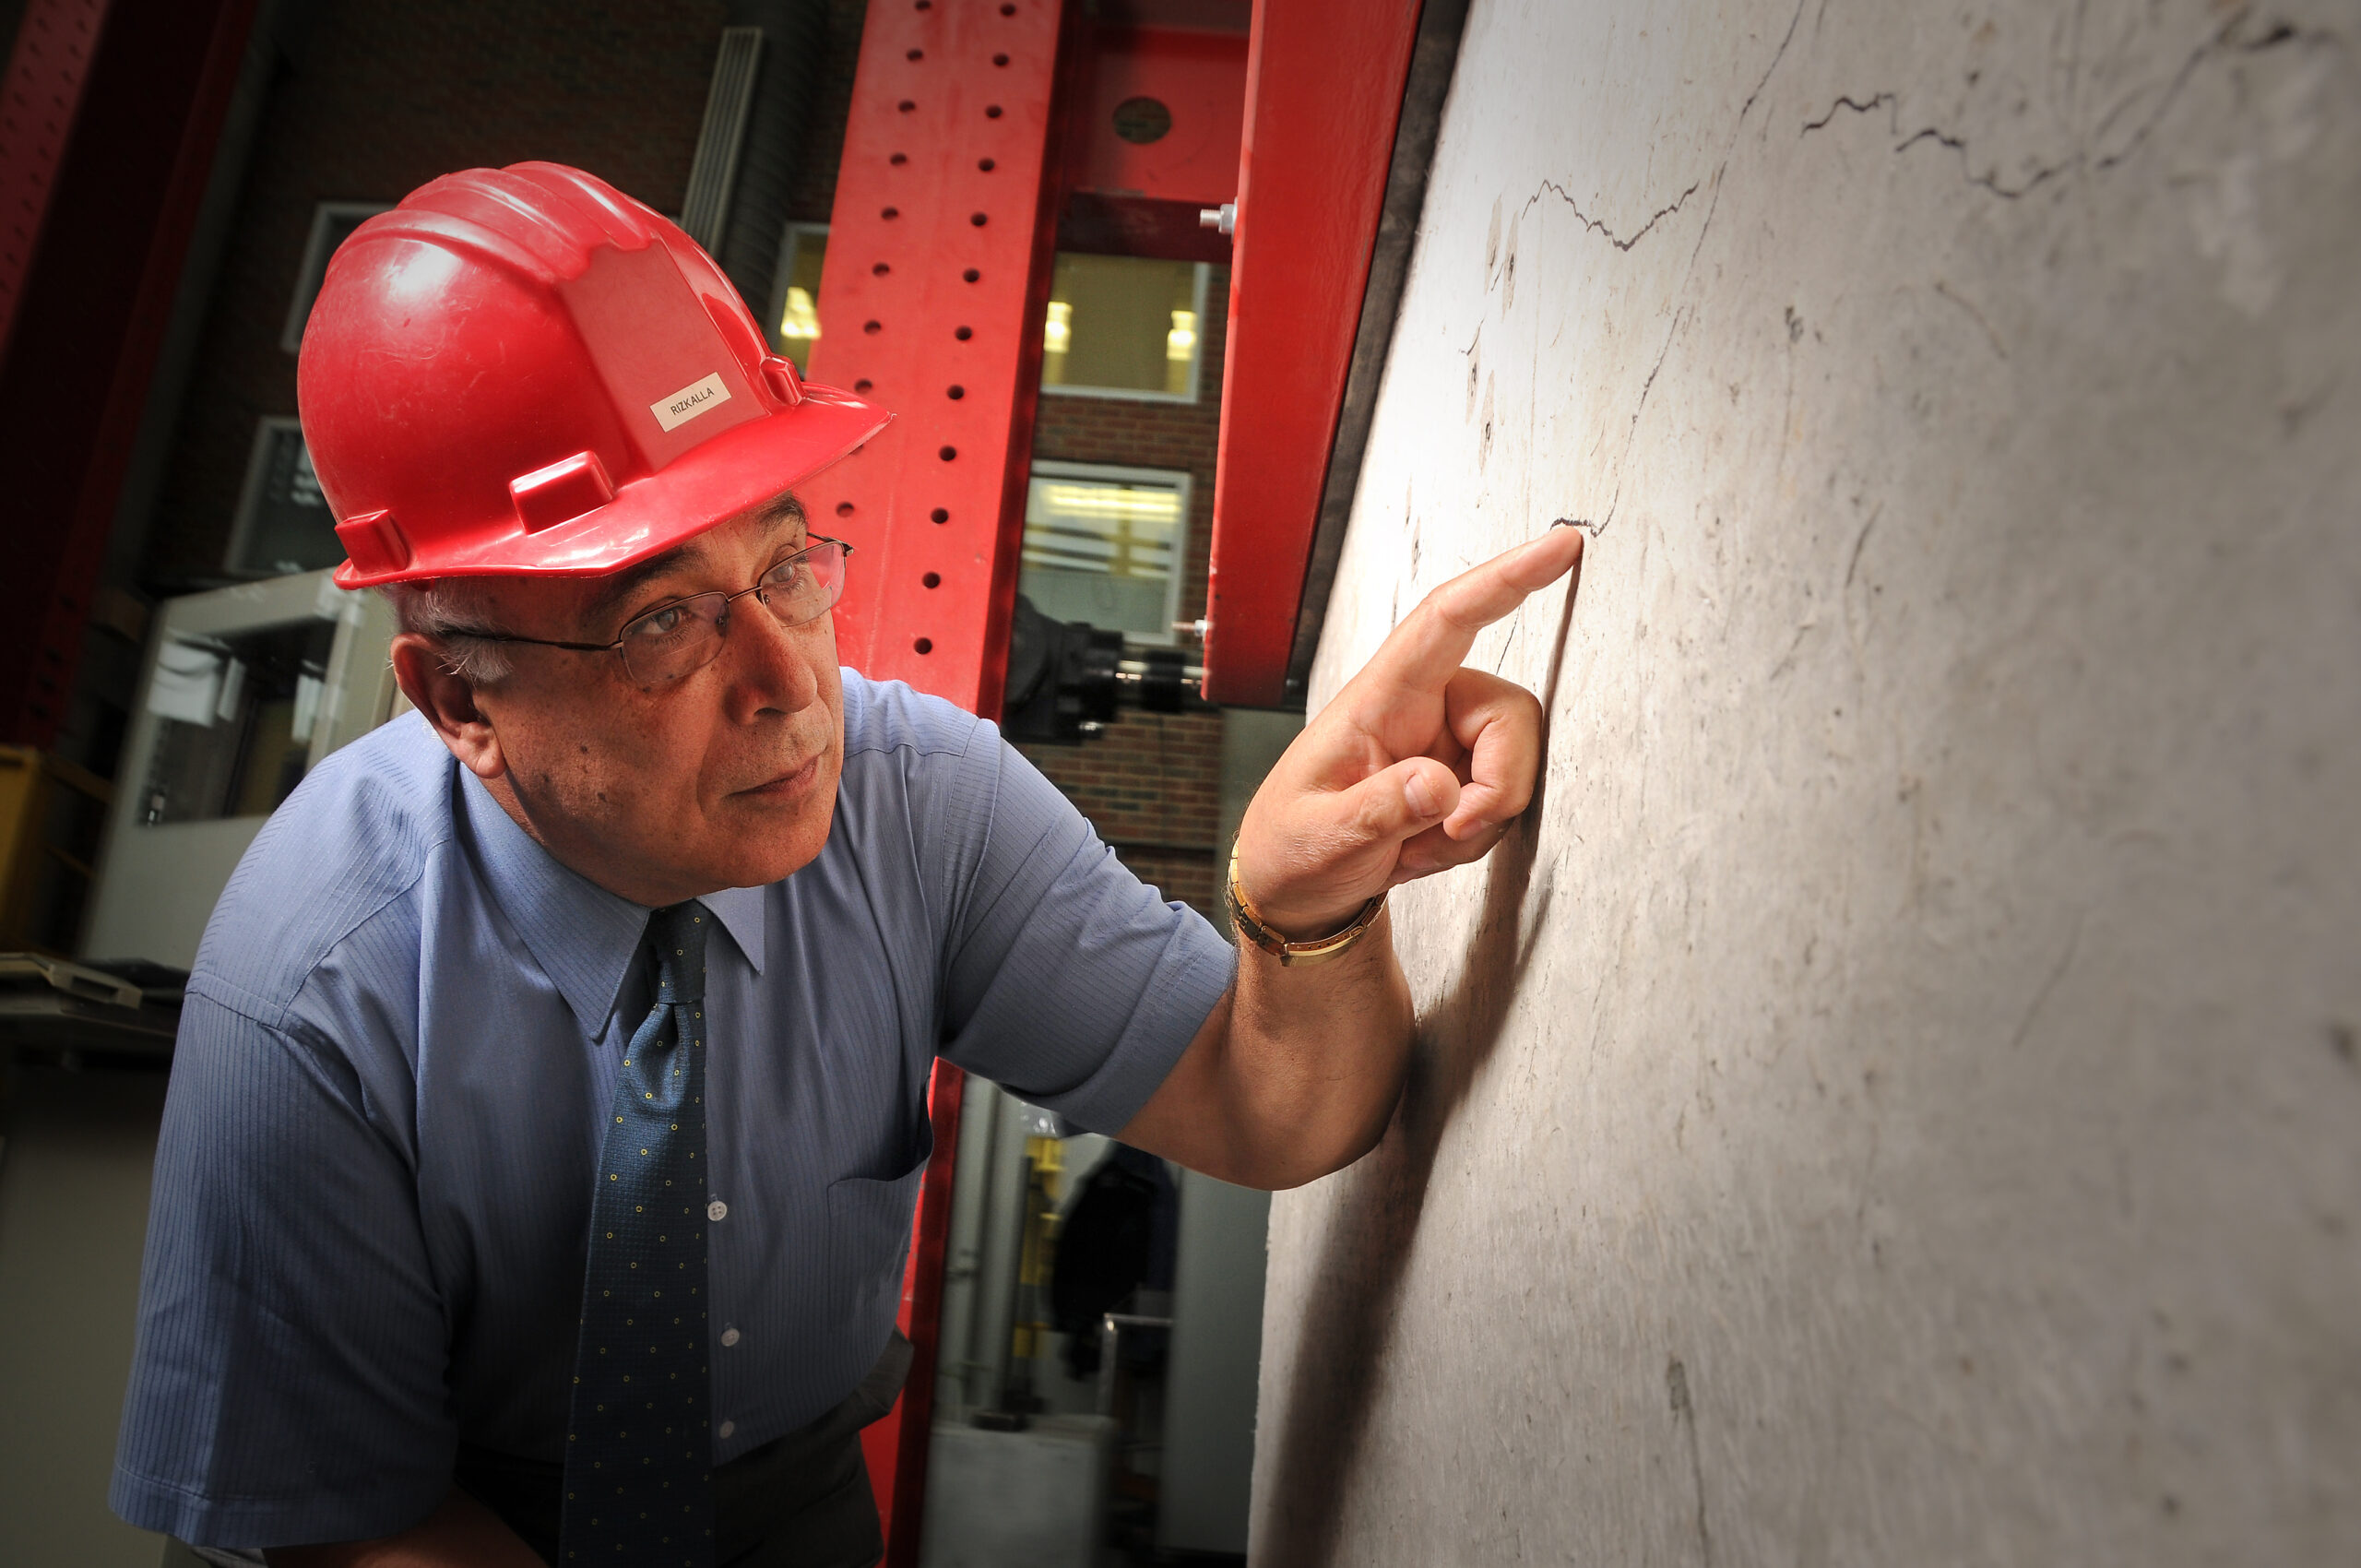 Browse Civil Engineering, Construction and Architecture Careers